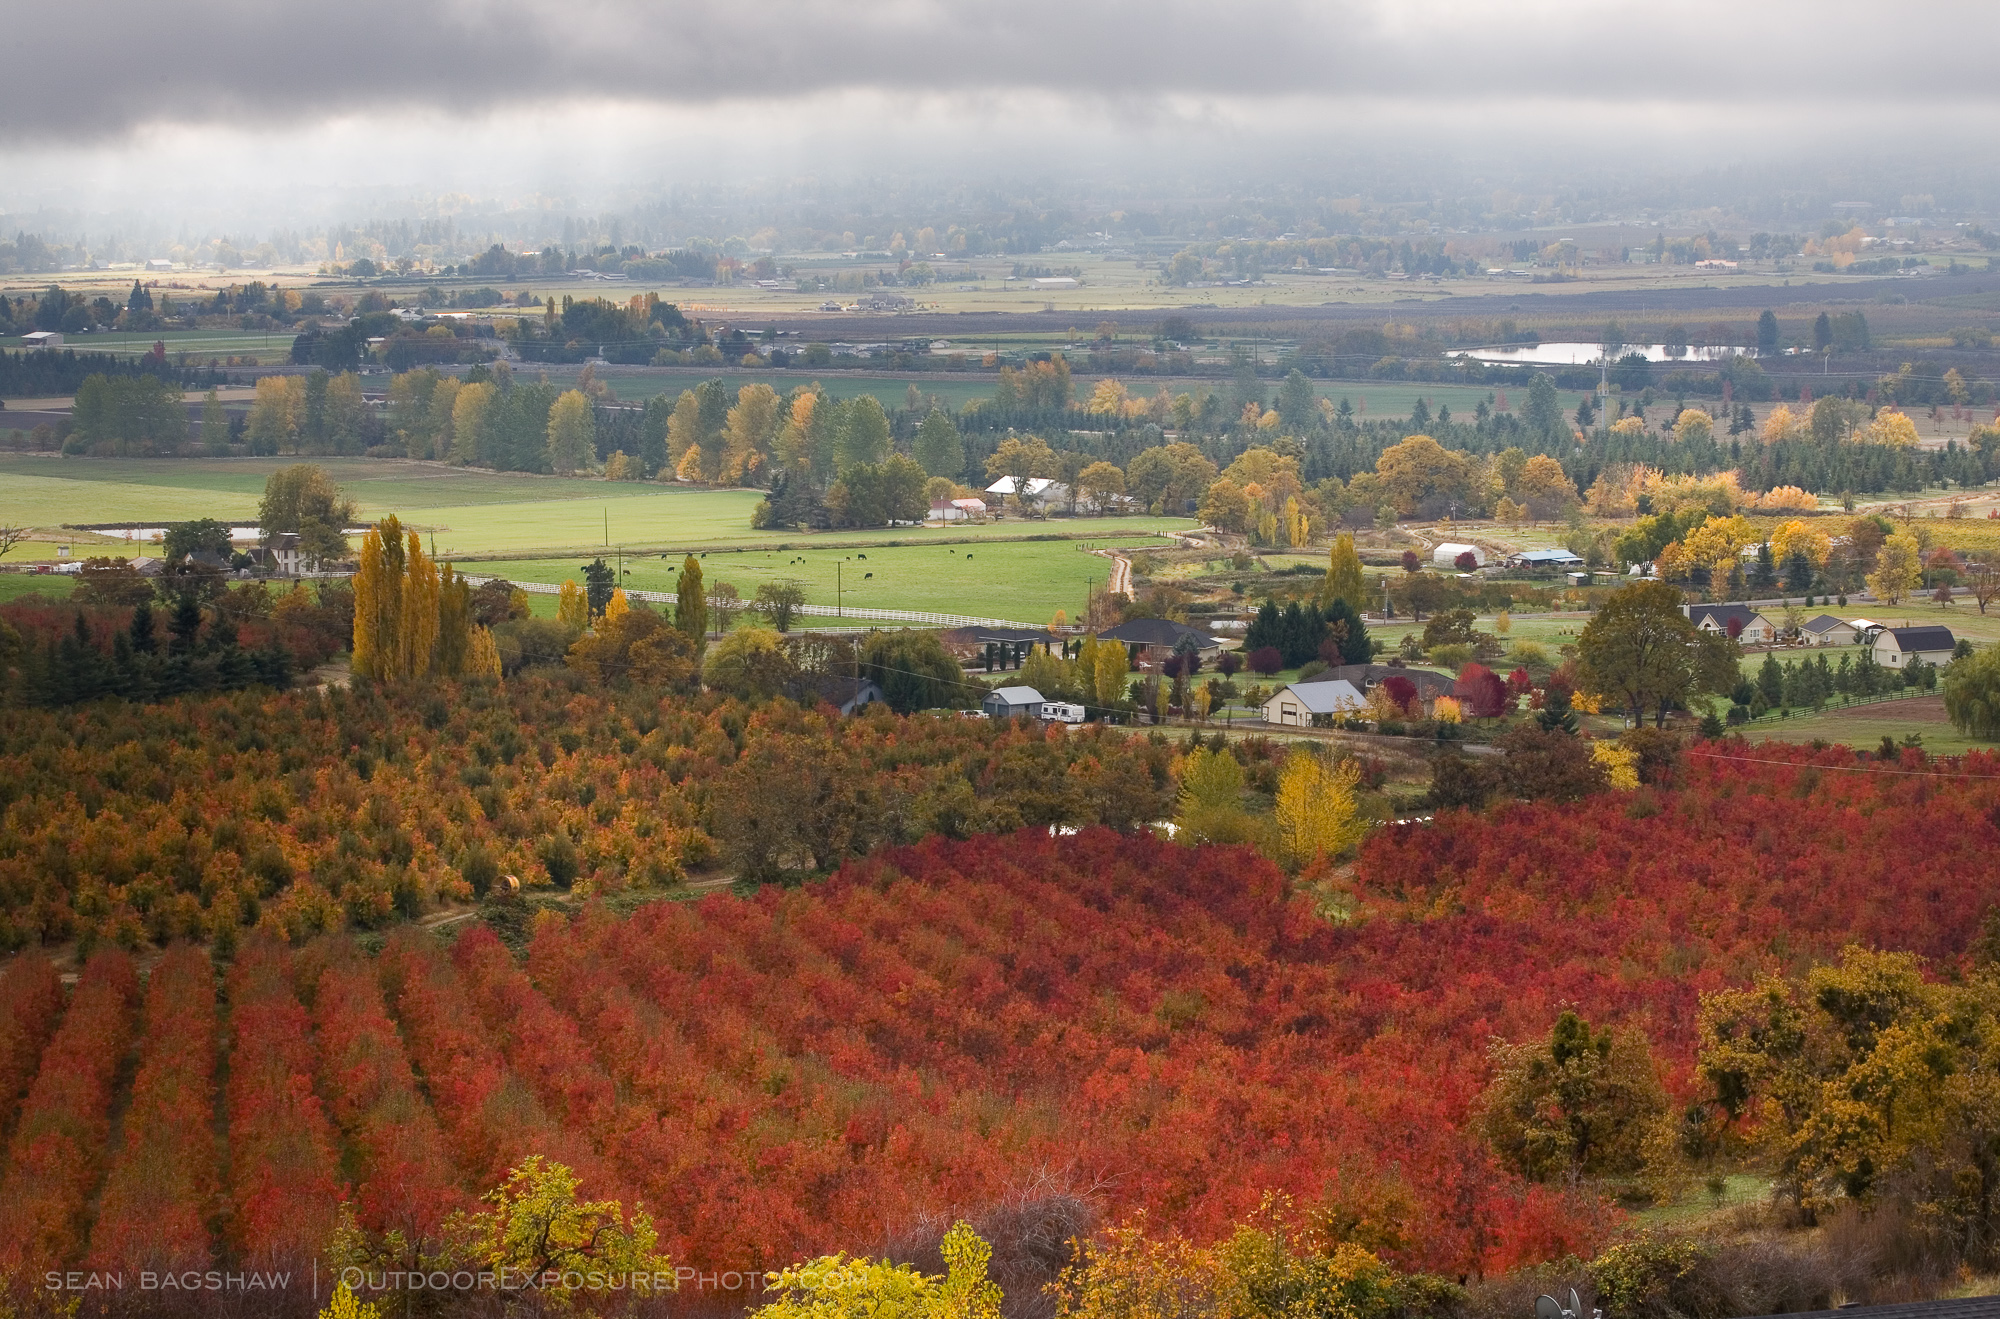 THE ROGUE VALLEY PUTS ON A RIOT OF COLOR EACH FALL